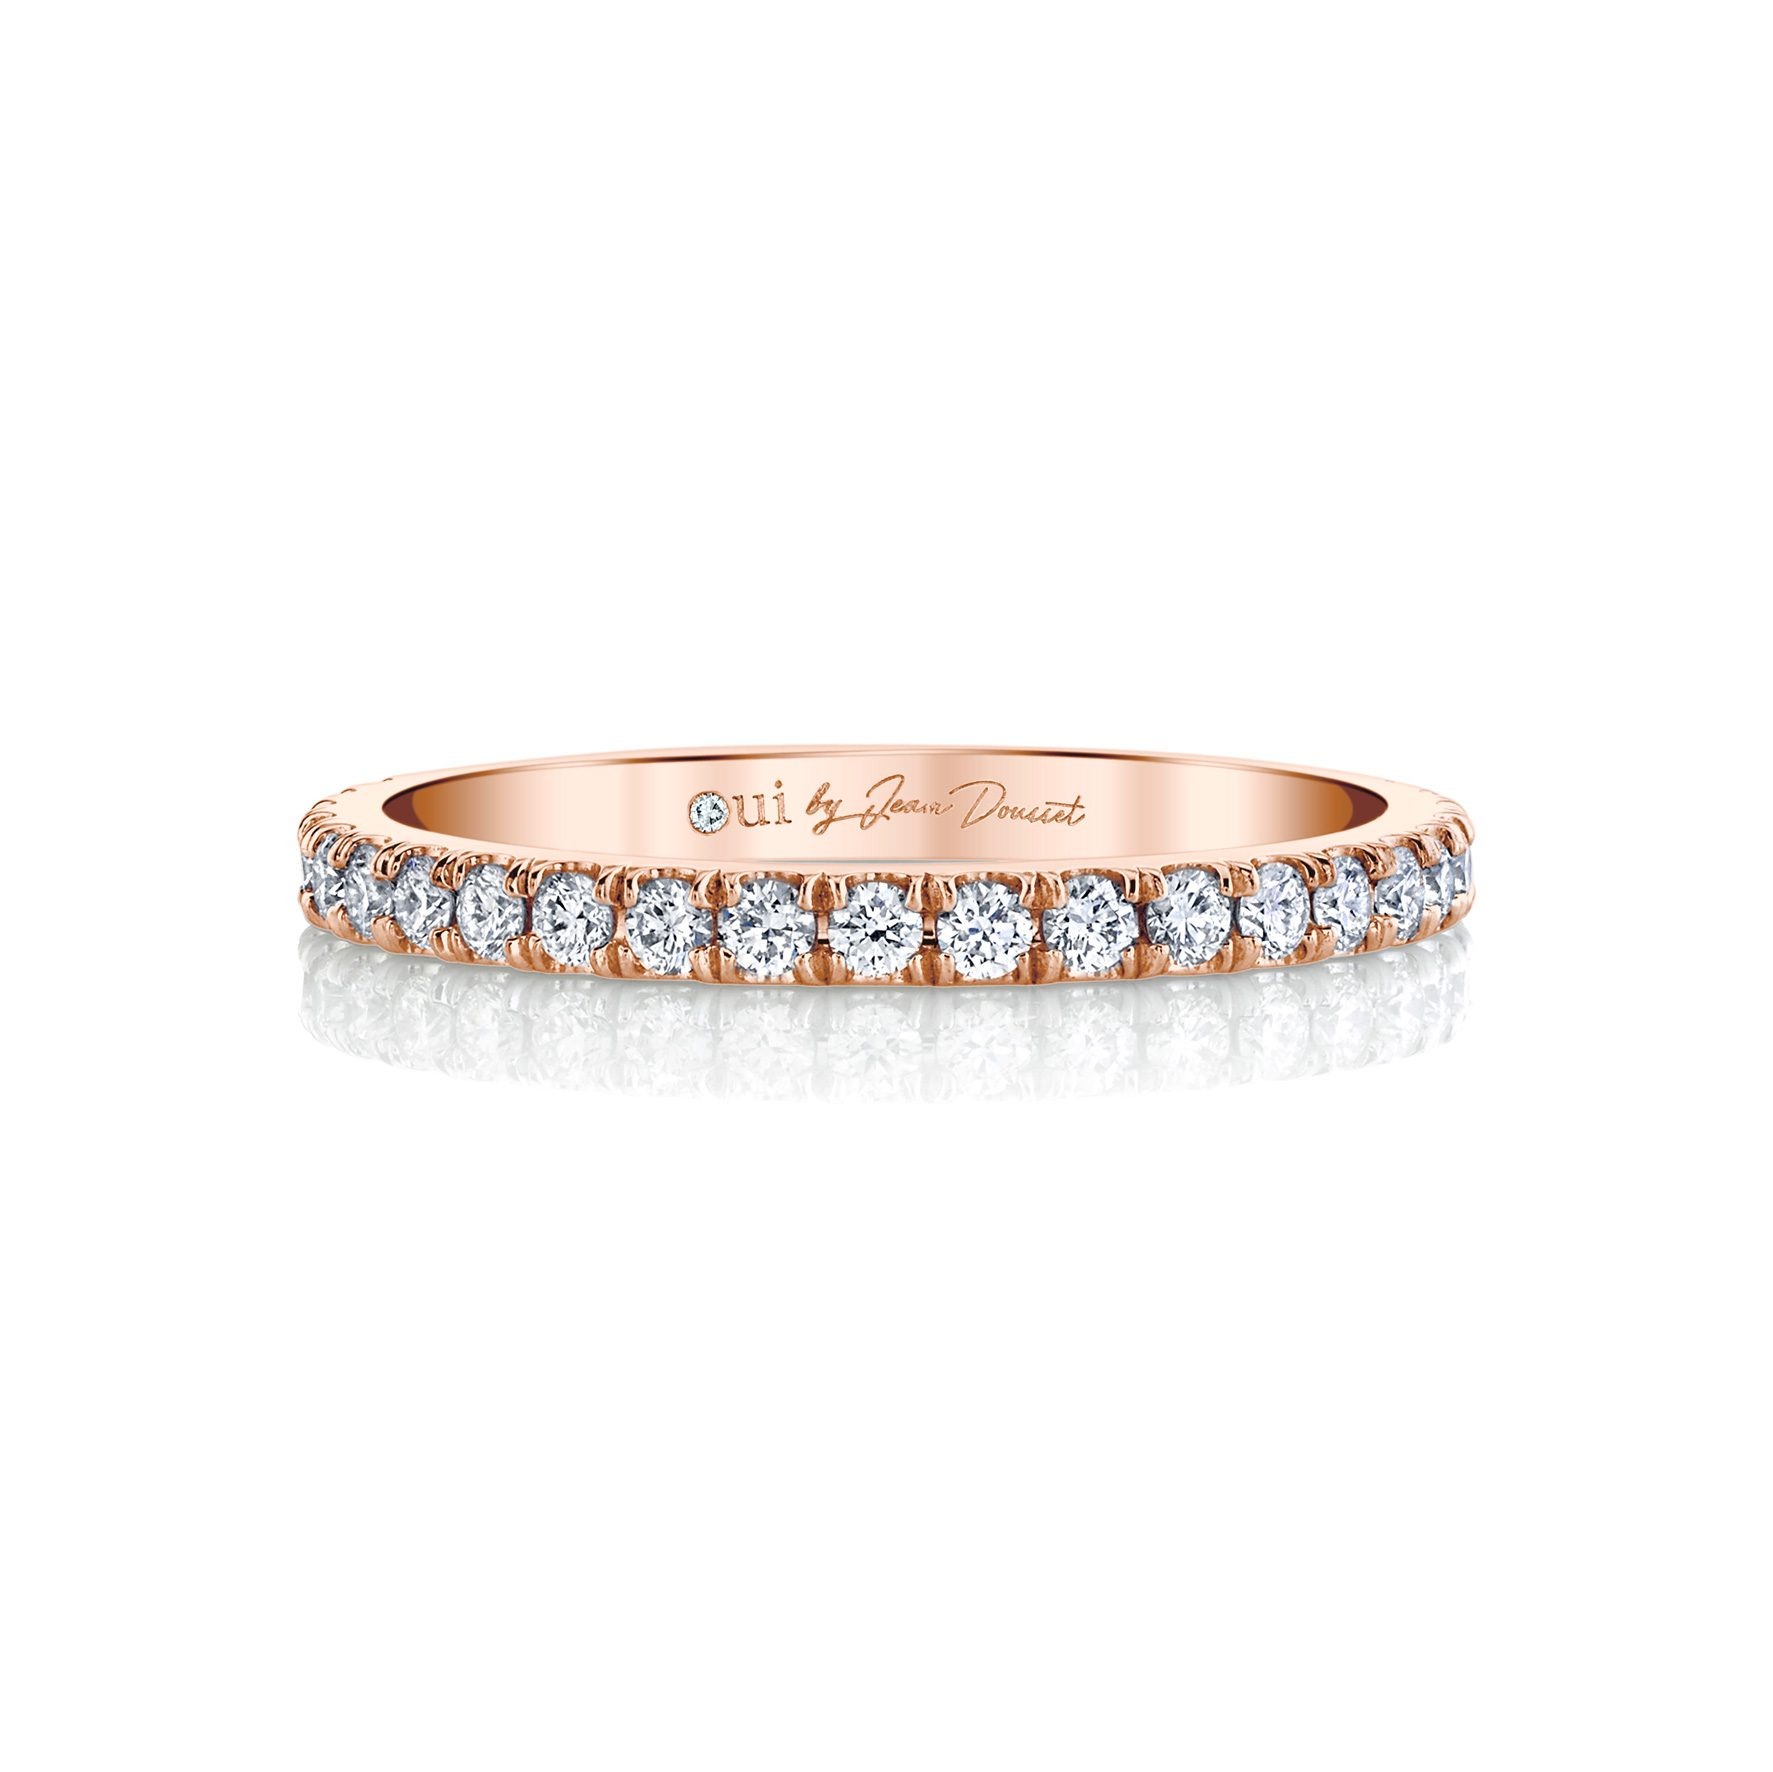 Eloise Women's Wedding Band 18k Rose Gold Front View by Oui by Jean Dousset